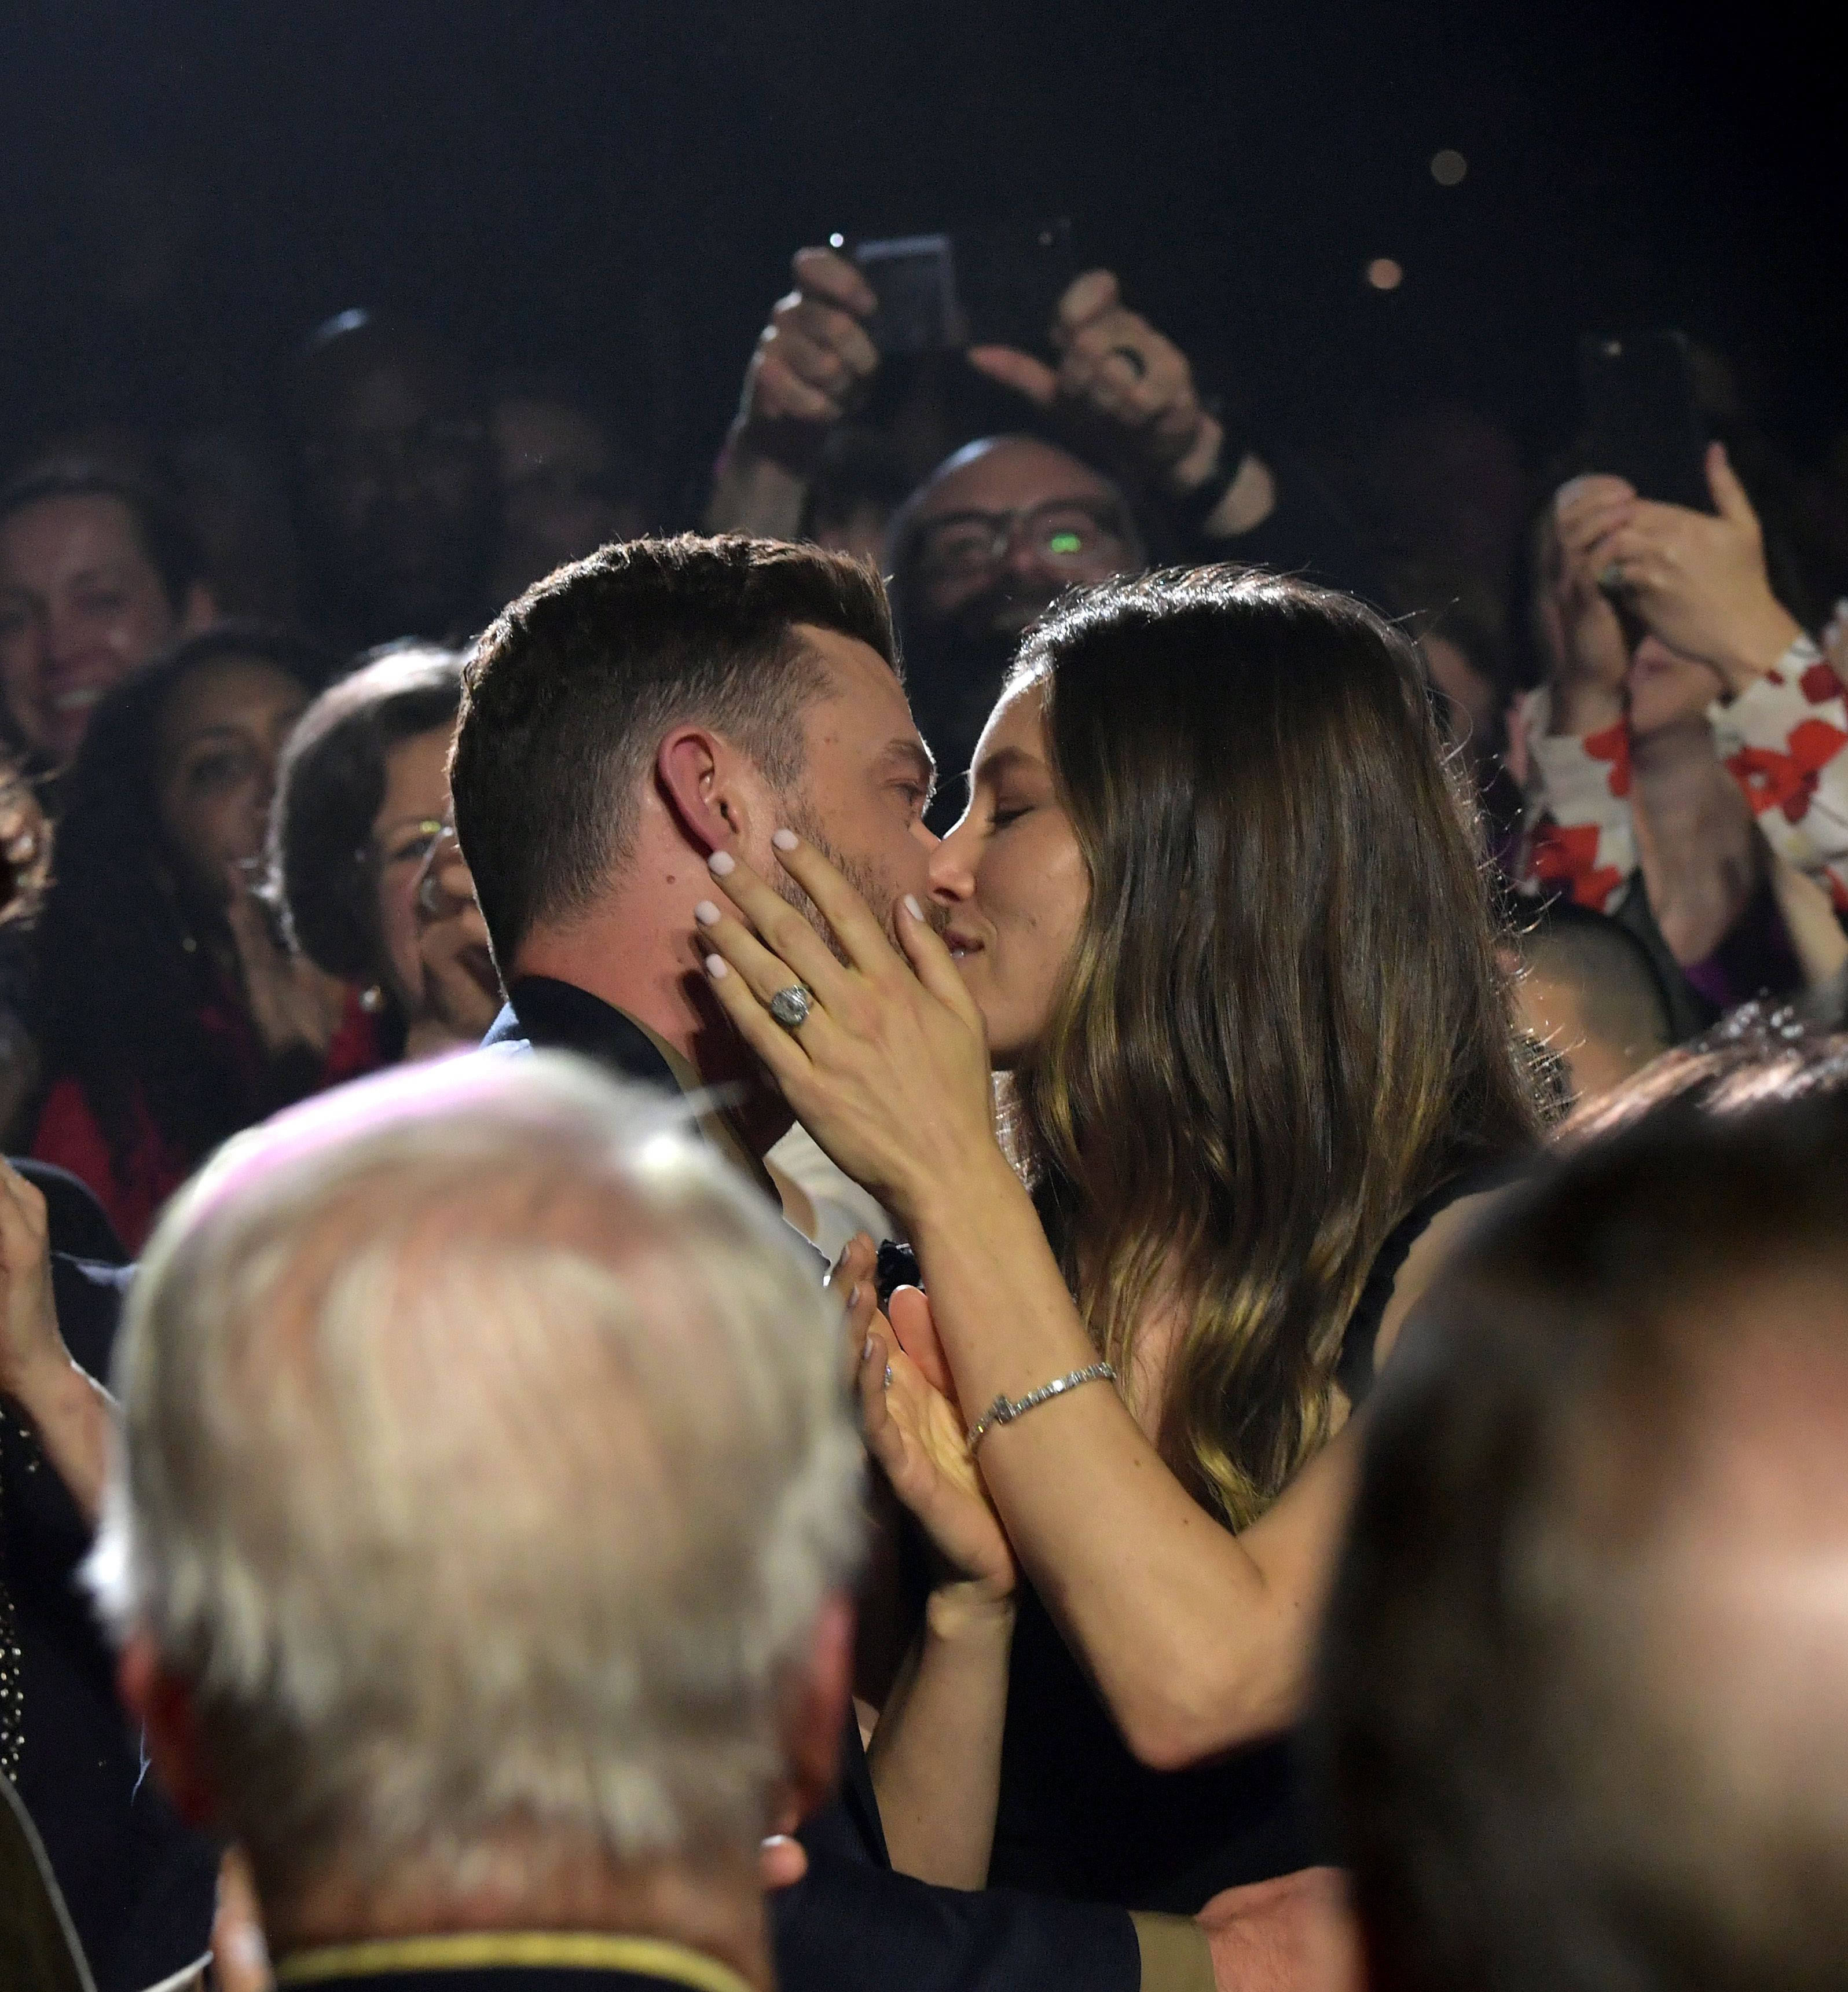 Justin Timberlake kisses wife Jessica Biel at the annual Berklee College of Music Commencement concert at Agganis Arena at Boston University in Boston on May 10, 2019.